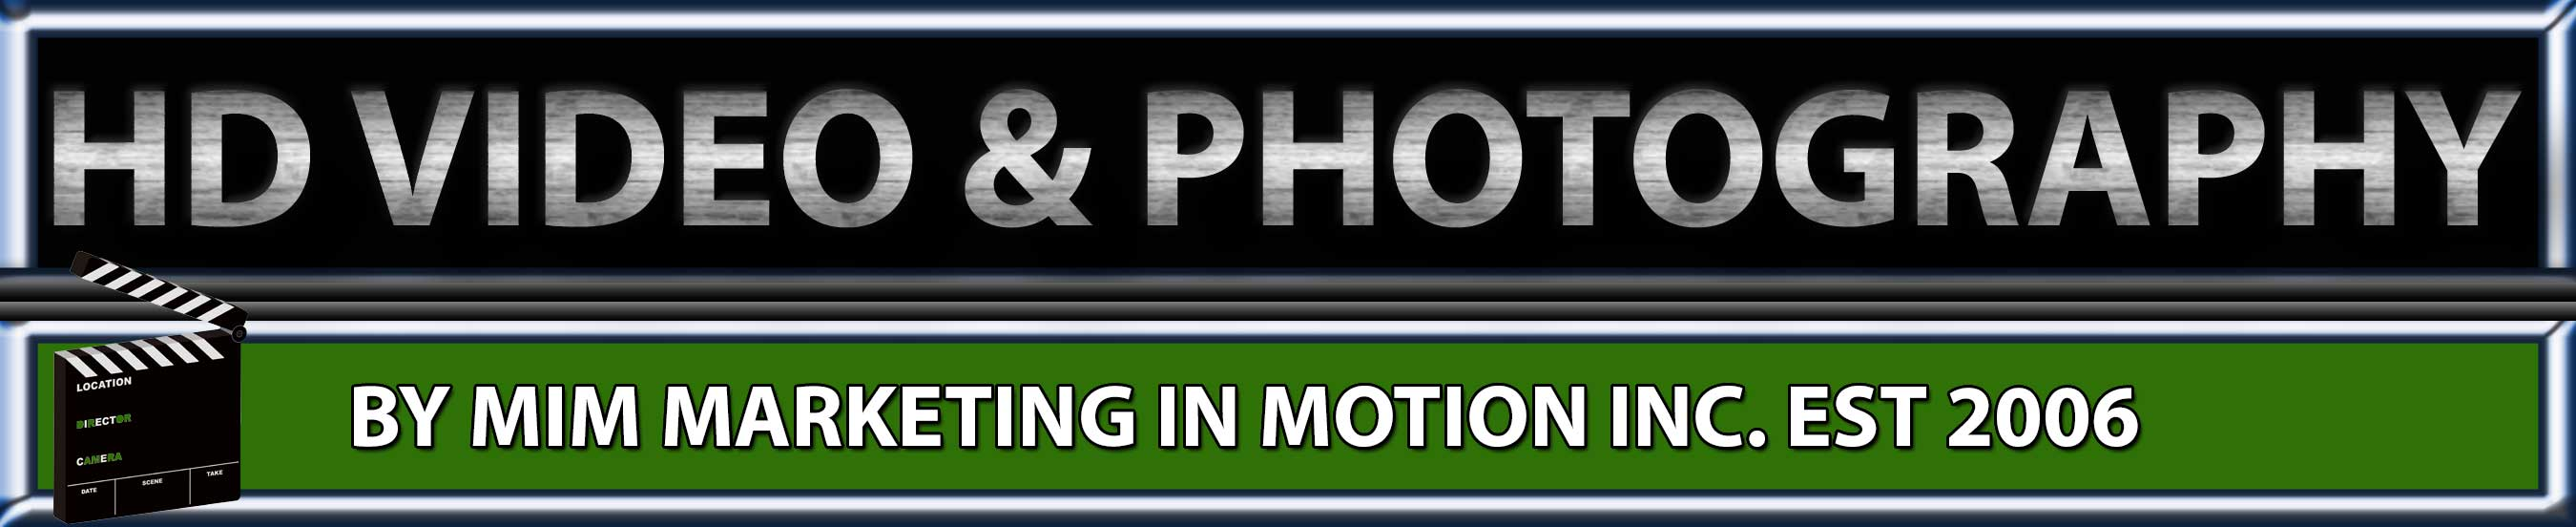 HD Video And Photography Marketing Co. Kelowna BC & Weddings